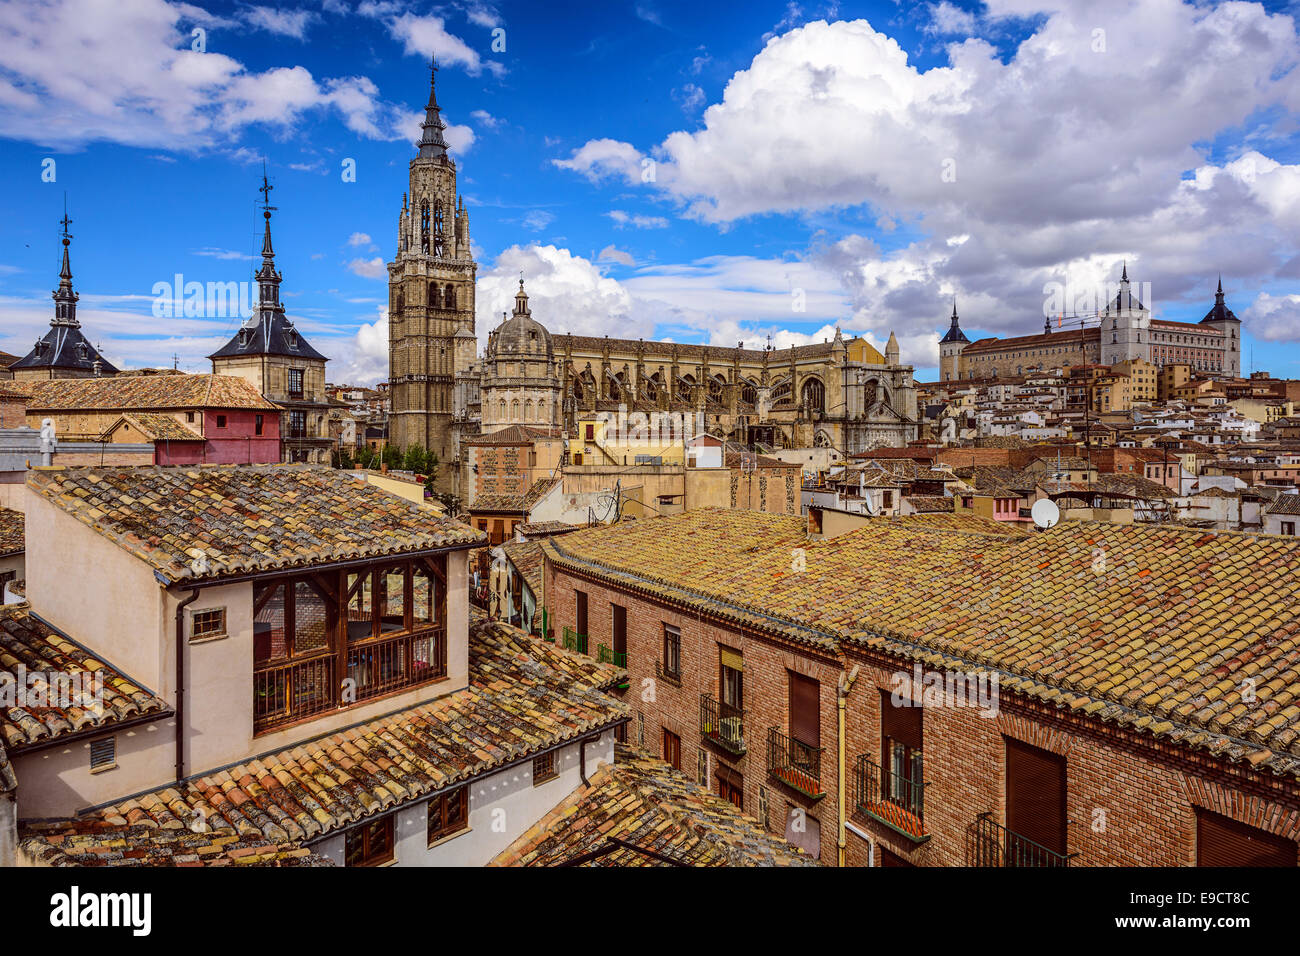 Toledo, Spain town skyline with the Cathedral and Alcazar. - Stock Image